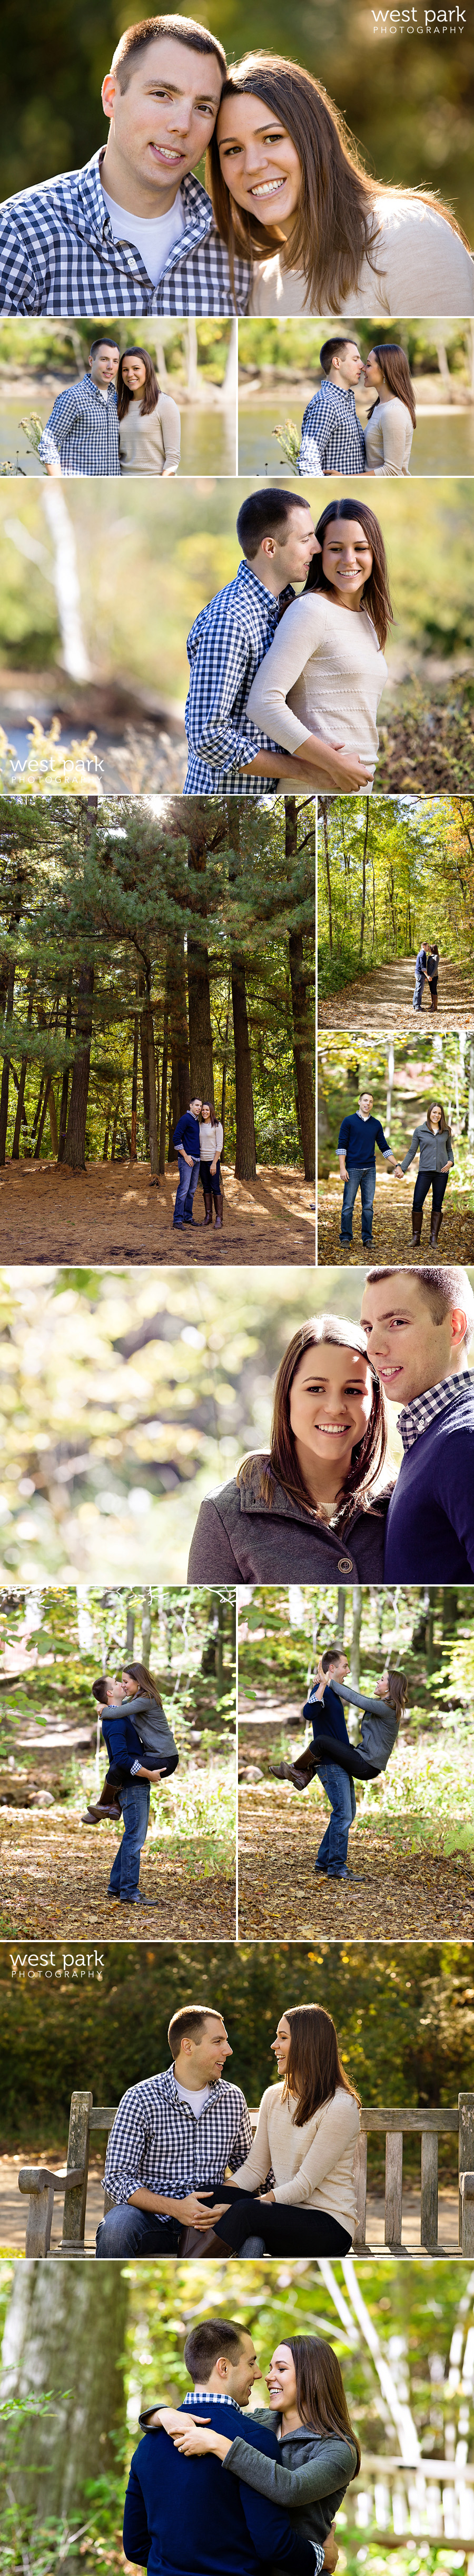 Nichols Arboretum Ann Arbor Engagement2 Jennifer + Alex  |  Ann Arbor Engagement Session at Nichols Arboretum